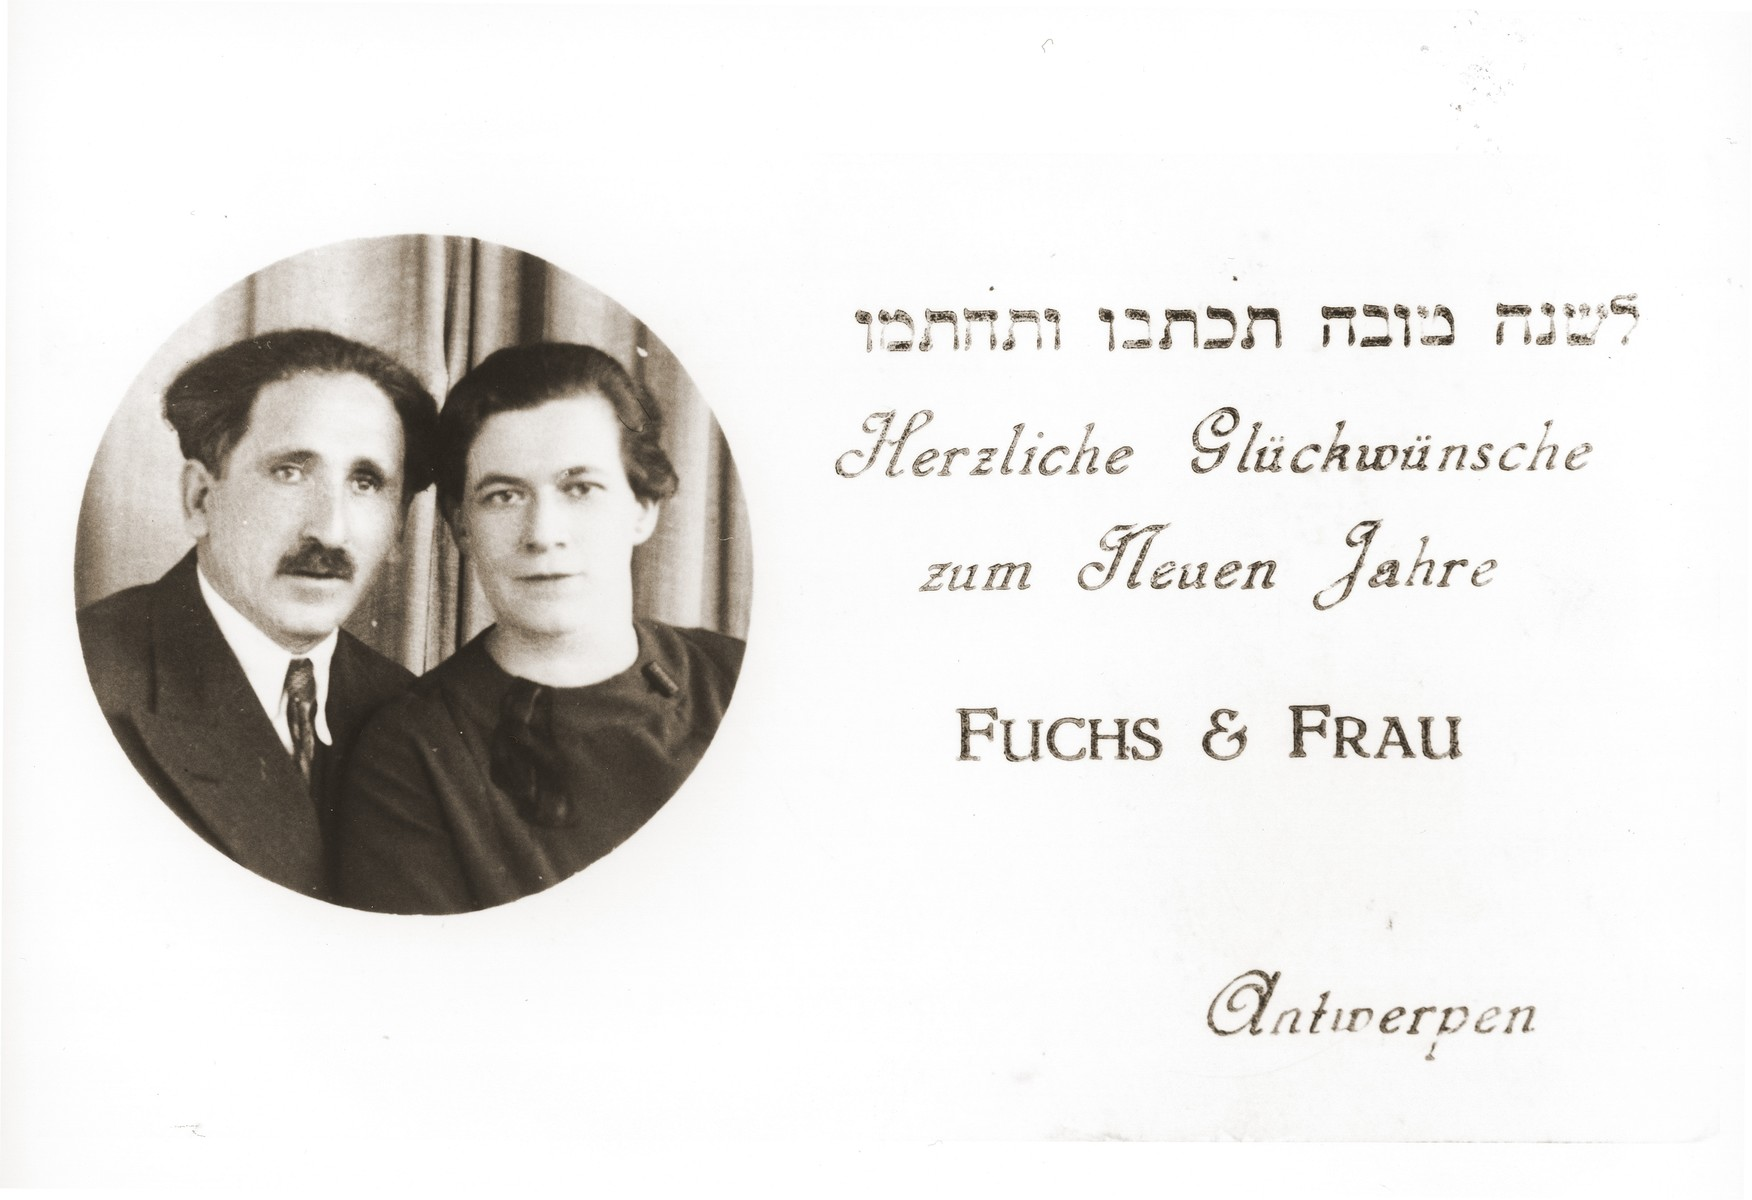 Personalized Jewish New Year's card bearing a photograph of Oskar and Pola Fuchs.